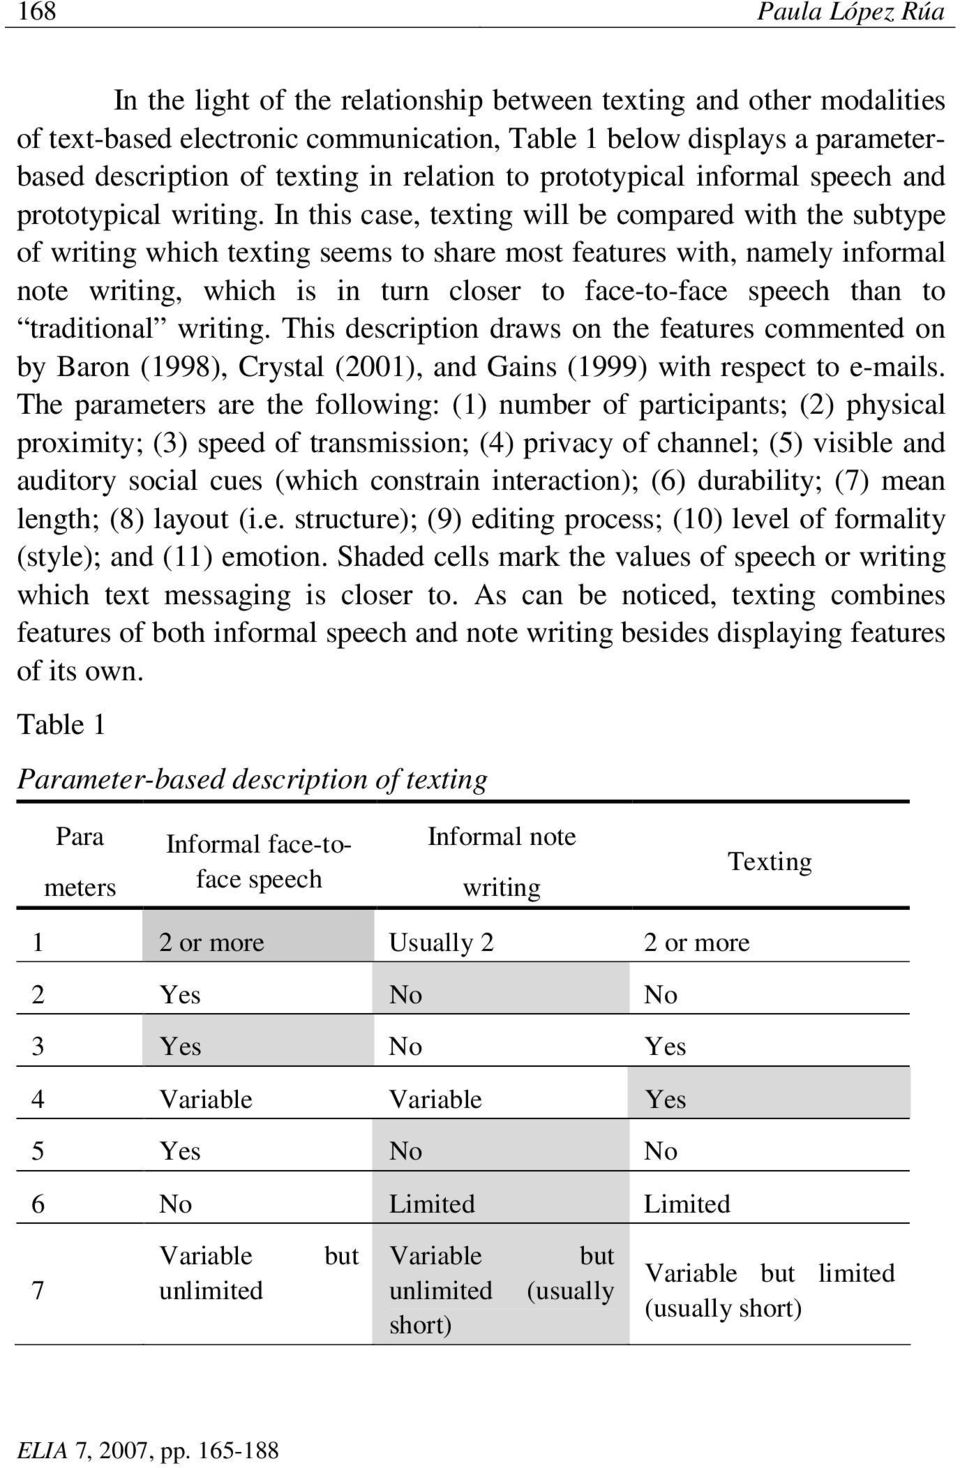 In this case, texting will be compared with the subtype of writing which texting seems to share most features with, namely informal note writing, which is in turn closer to face-to-face speech than